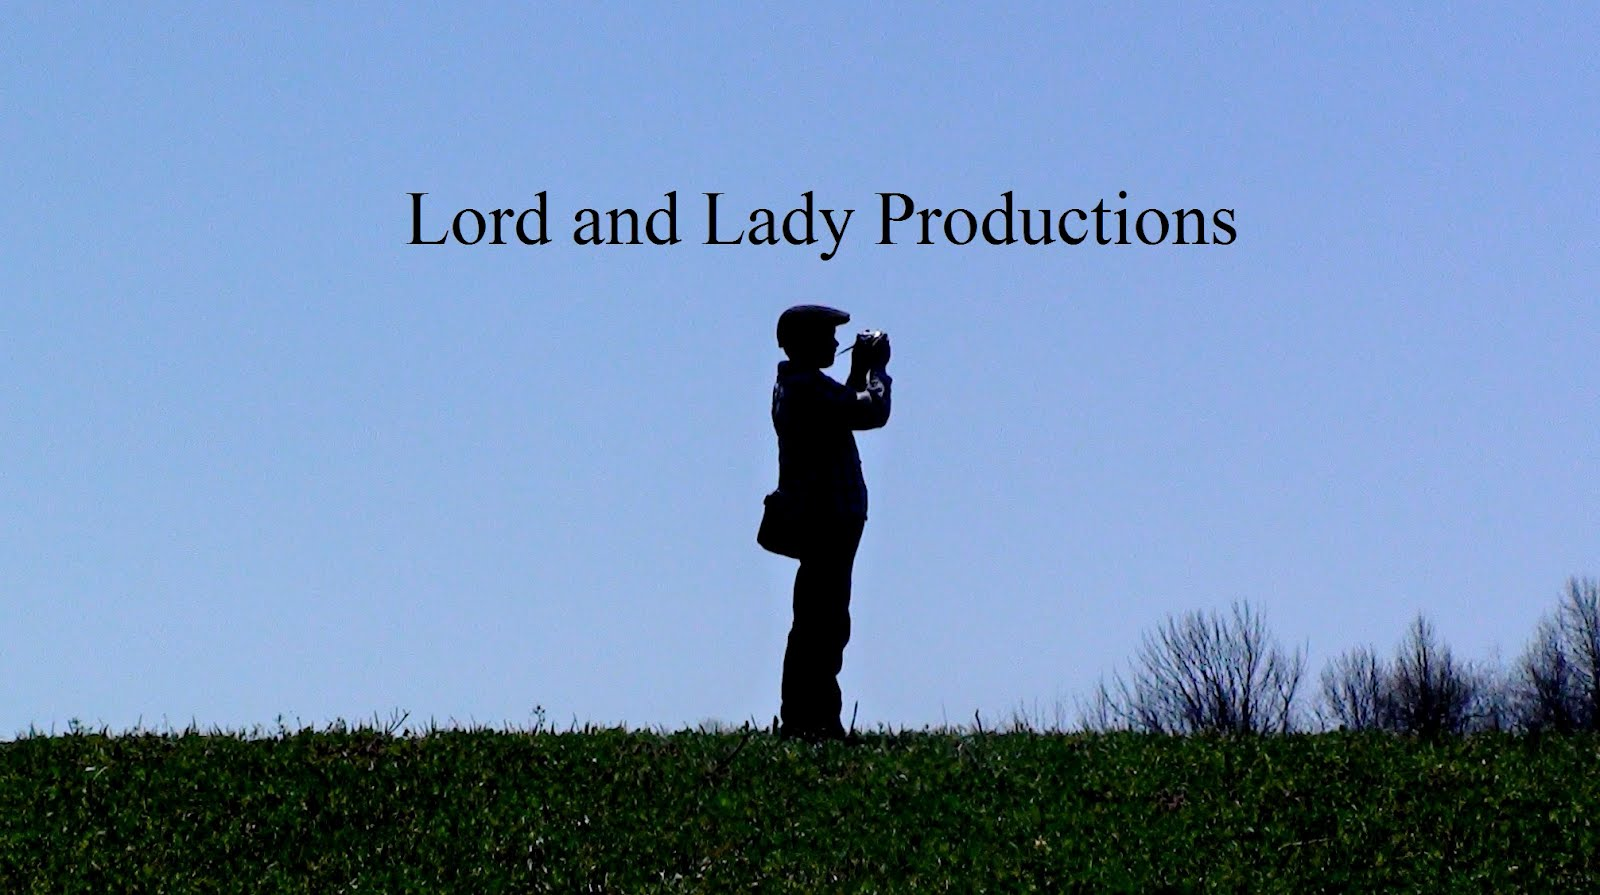 Lord and Lady Productions